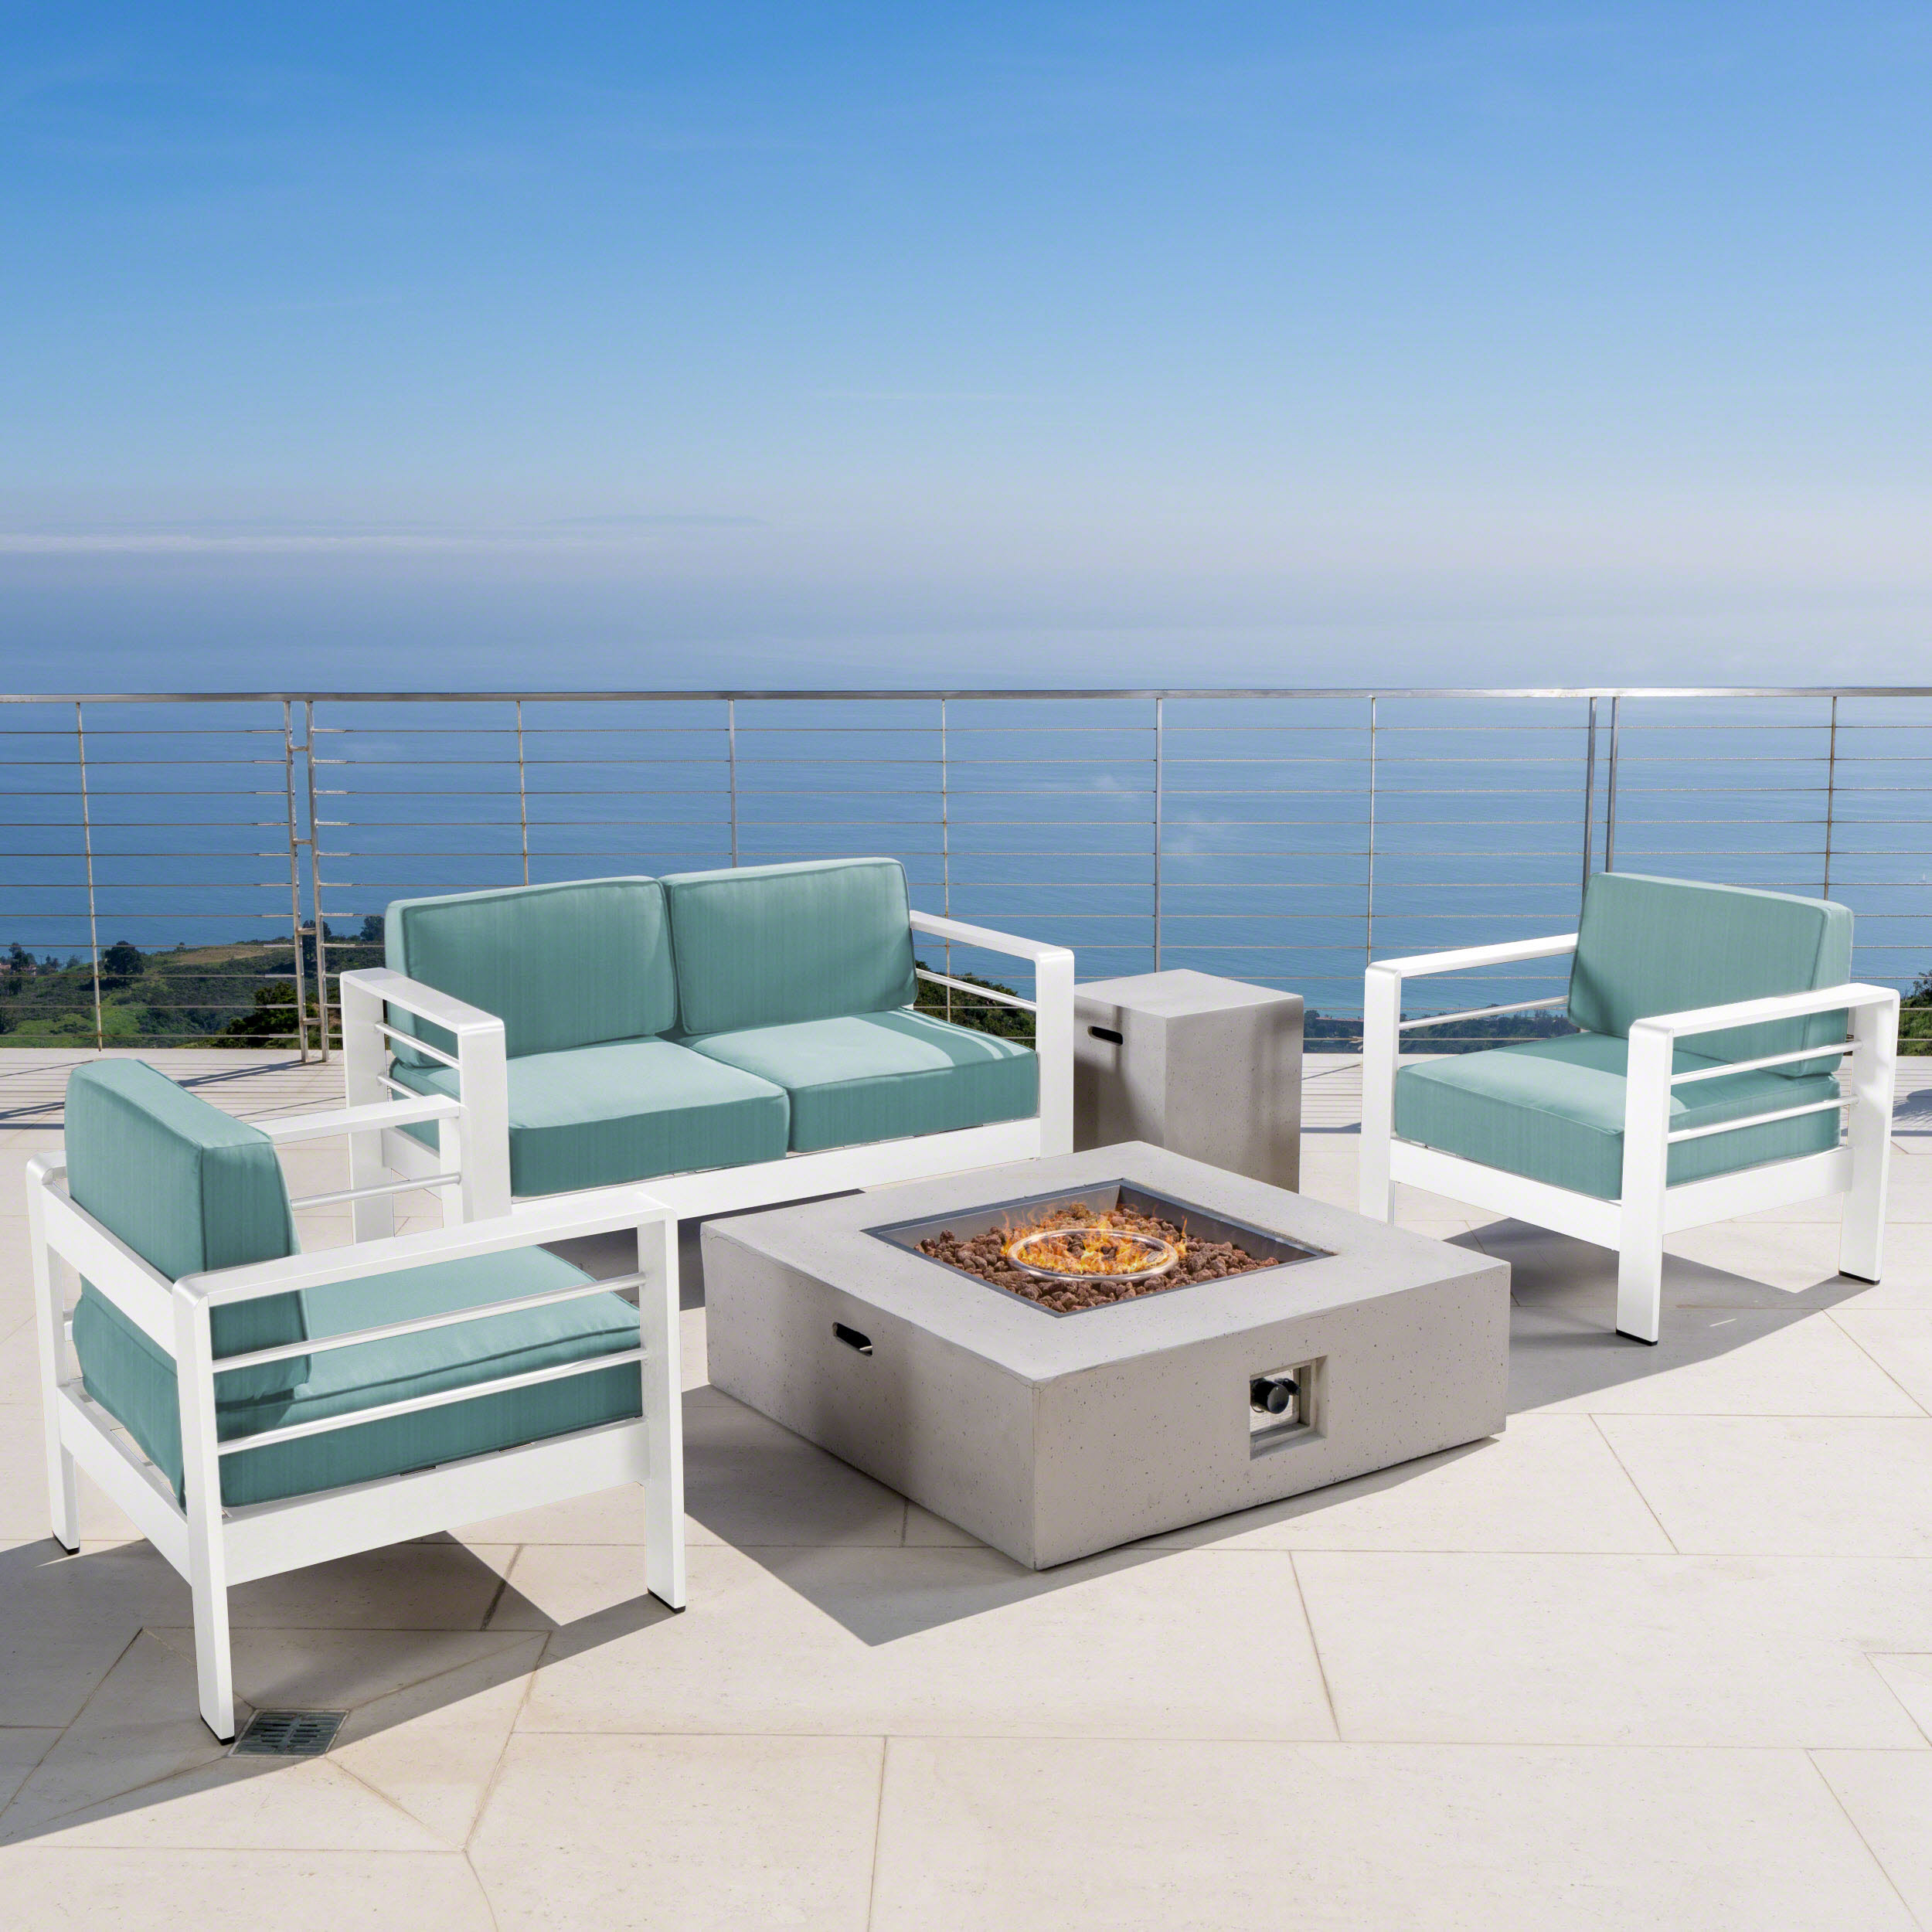 Outdoor 5 Piece Aluminum Chat Set with Cushions and Square Fire Pit,White,Grey,Teal